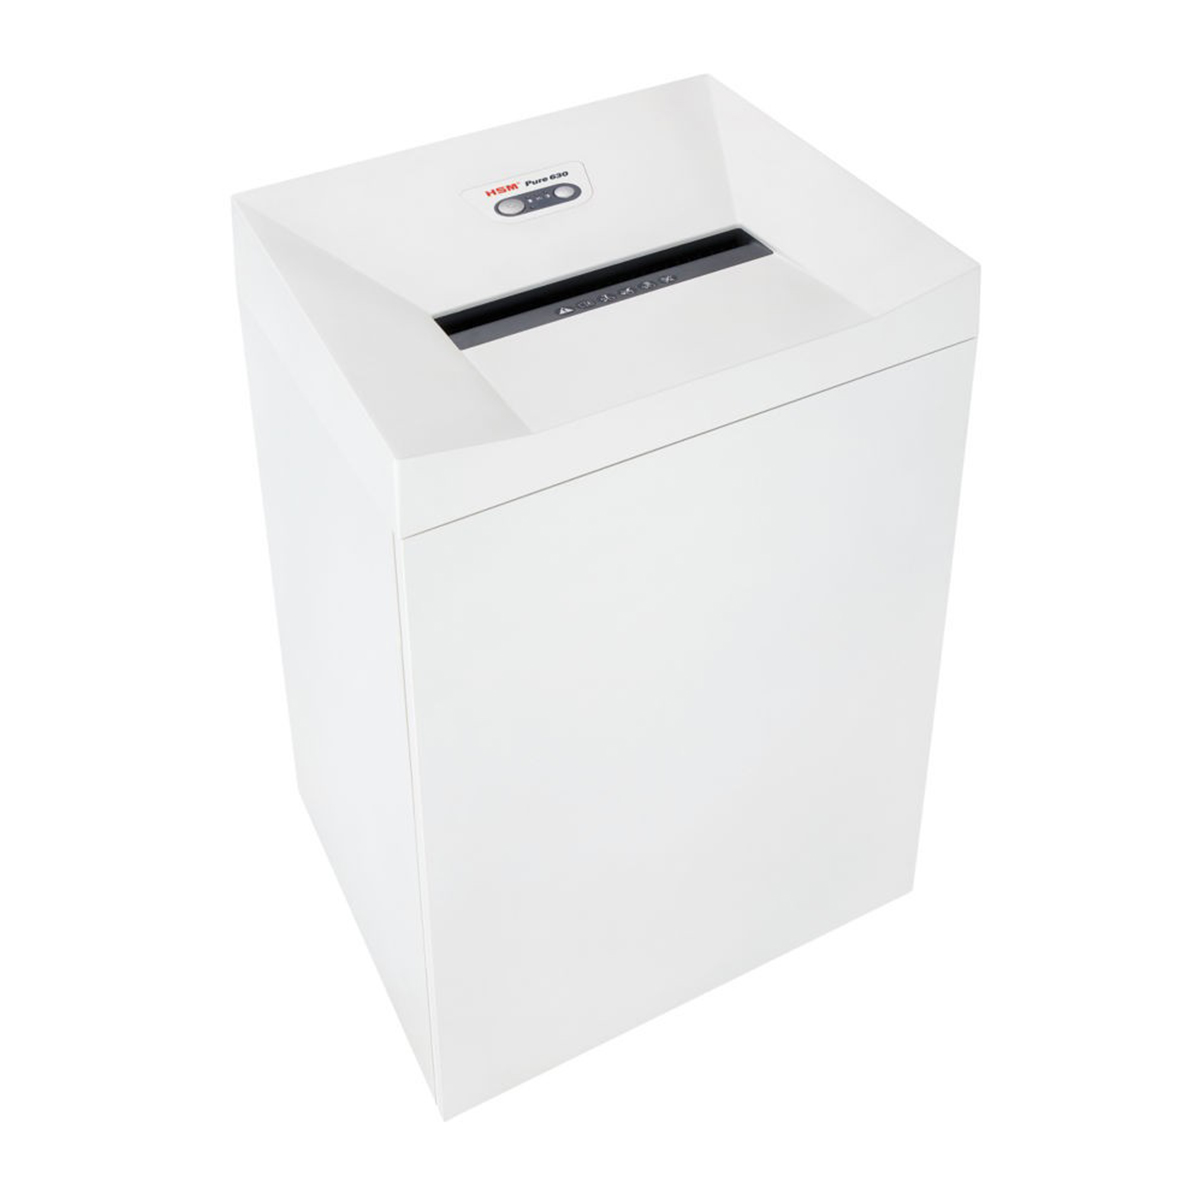 HSM Pure 630 3.9mm Strip Cut Shredder